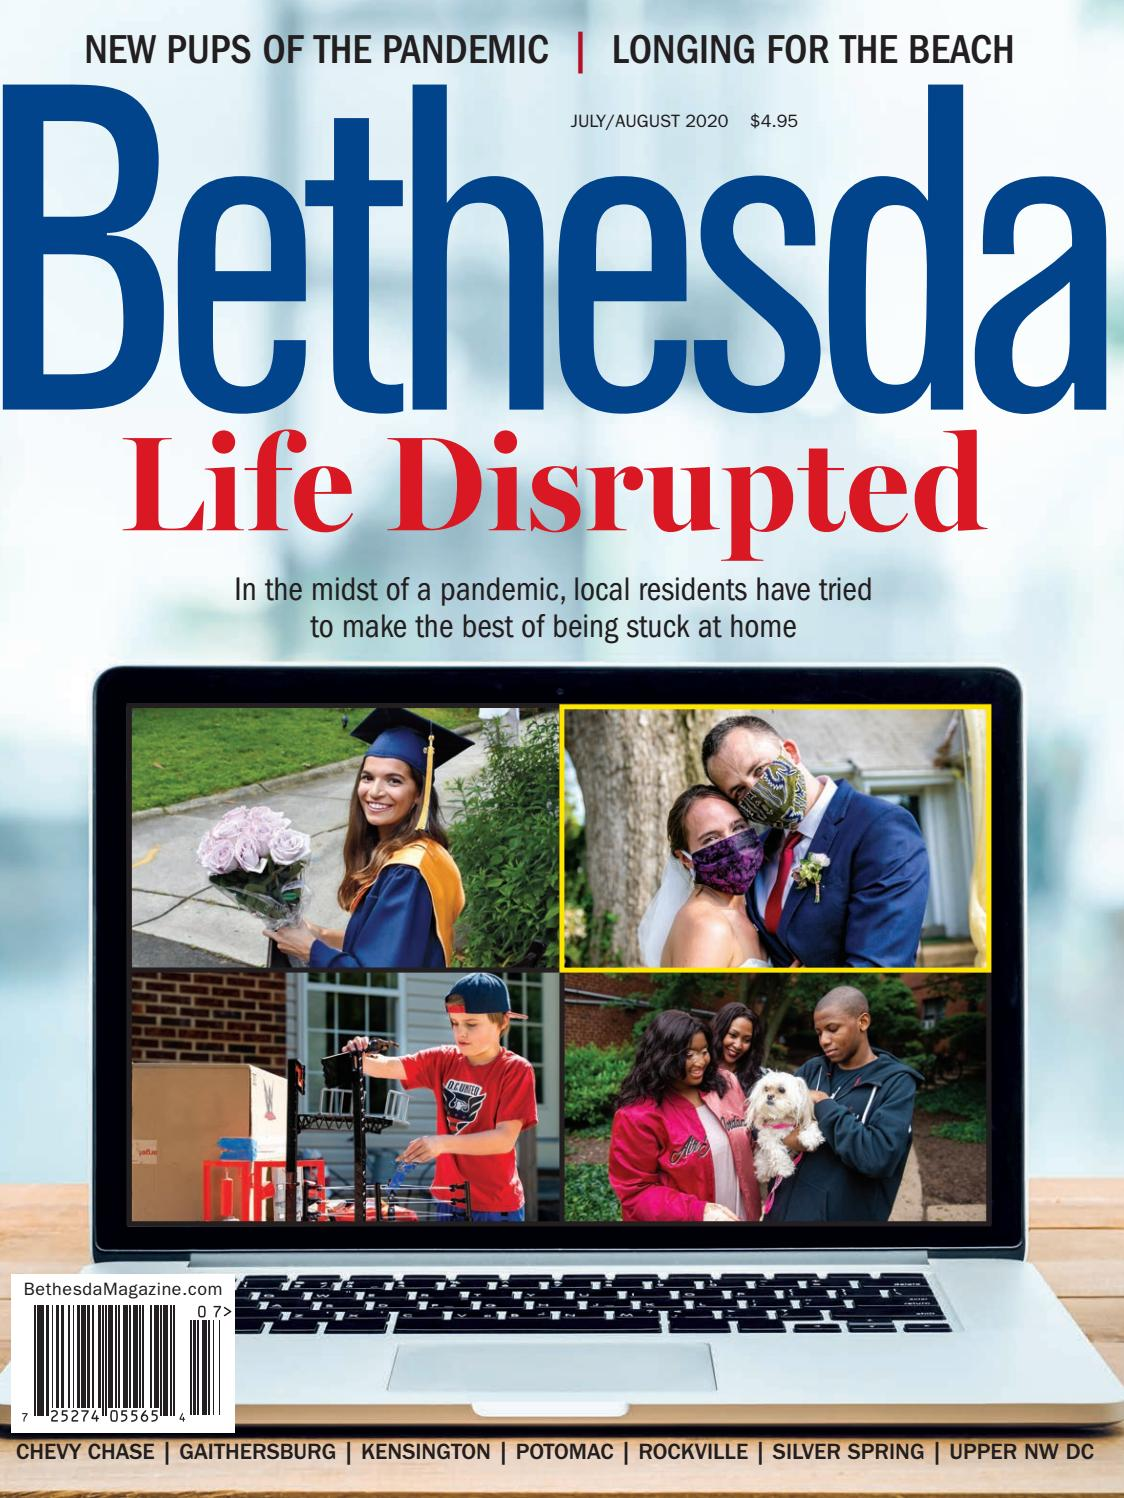 Christmas In July 2020 Emma Johnson Bethesda Magazine: July August 2020 by Bethesda Magazine   issuu